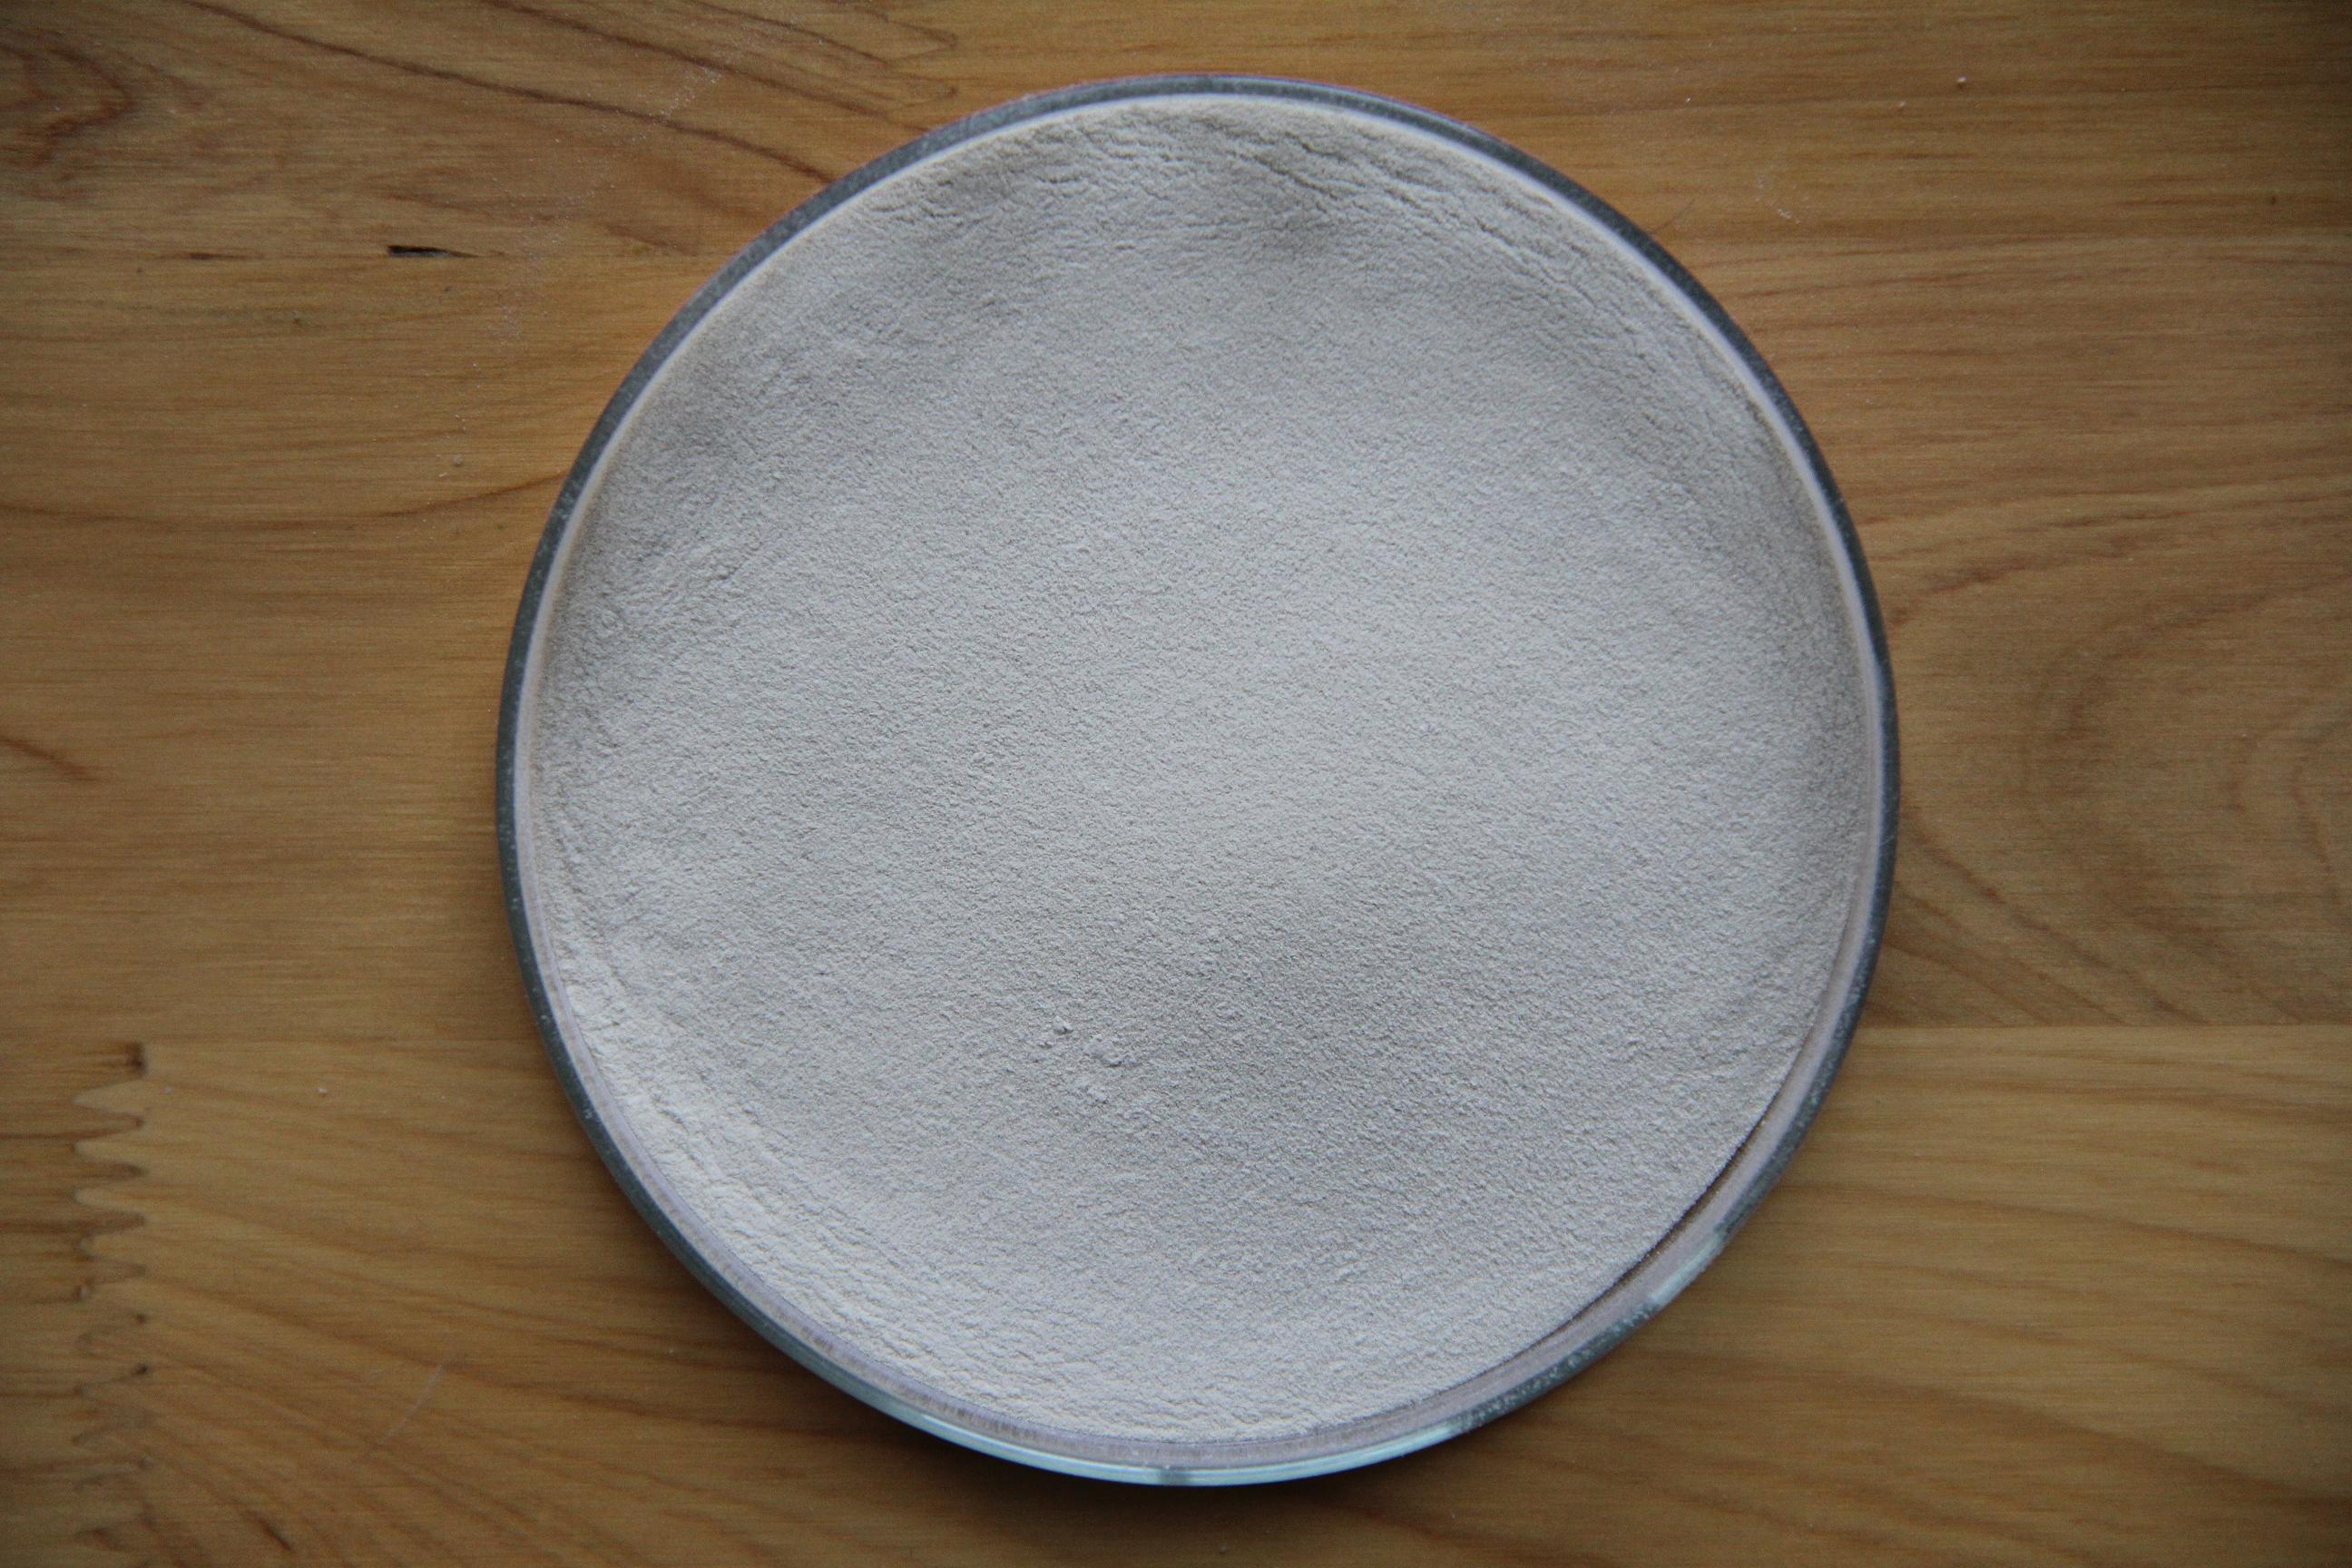 L-Cysteine HCl Anhydrous CAS 52-89-1